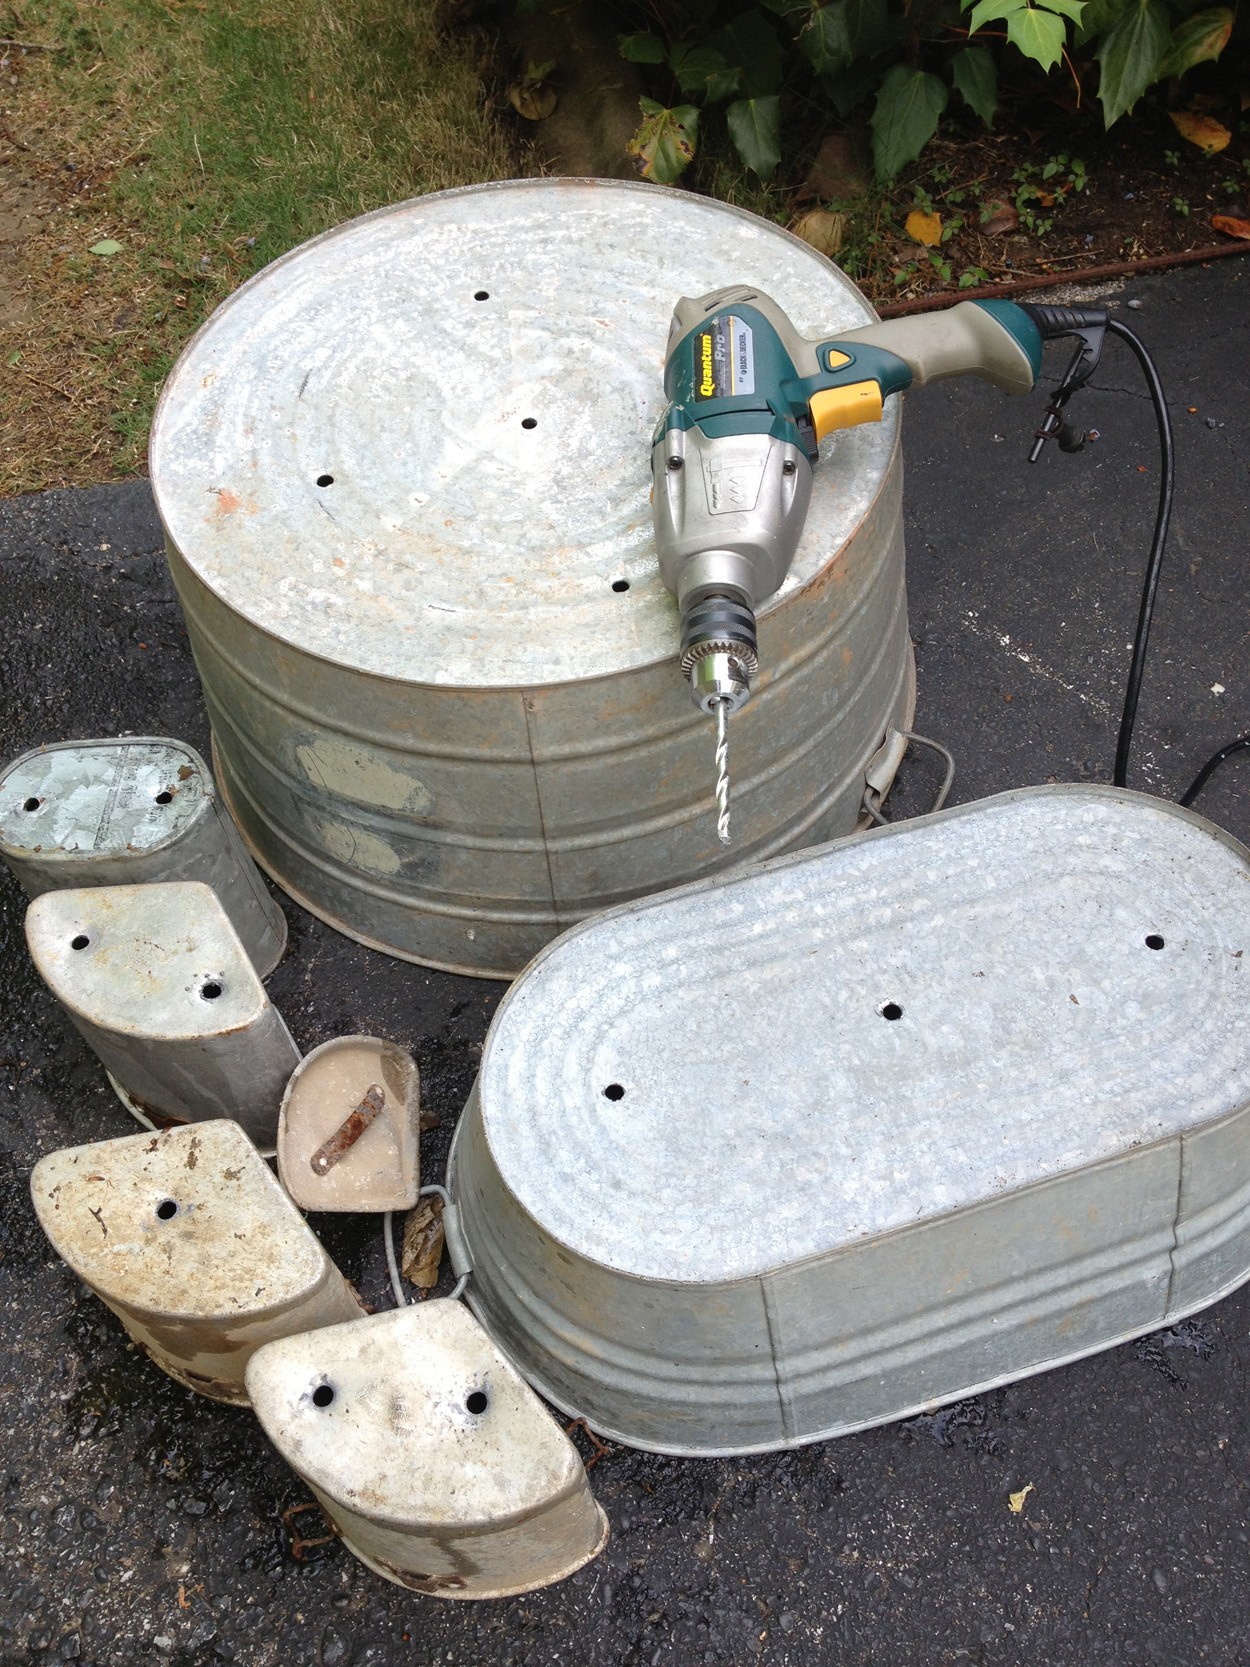 drilling holes in galvanized tubs